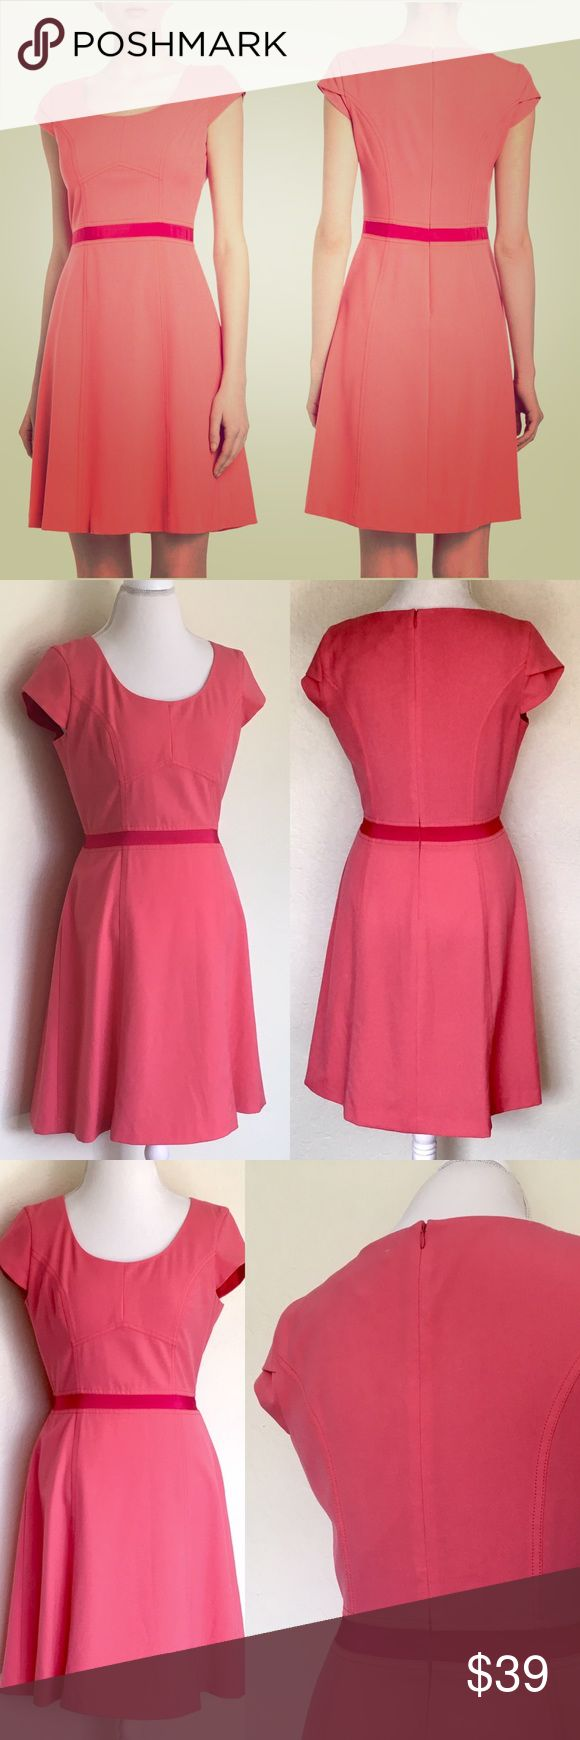 """ANDREW MARC Coral Pink Two-Tone Ribbon Trim Dress❤ ❤Super Cute MARC NEW YORK by Andrew Marc Two-Tone Ribbon Trim Fit-And-Flare Dress in Coral Pink❤Perfect for daytime office attire & spice up in the evening for drinks after work 🤗🥂❤NWT, no flaws, pet & smoke free home. Scoop neckline, pretty cap sleeves, geometric seams/tonal topstitching on fitted top, hidden back zip, contrast grosgrain waistline, flared seamed Skirt, straight hem, part lined. Measures flat, approx: L:37.5"""", C:19""""…"""